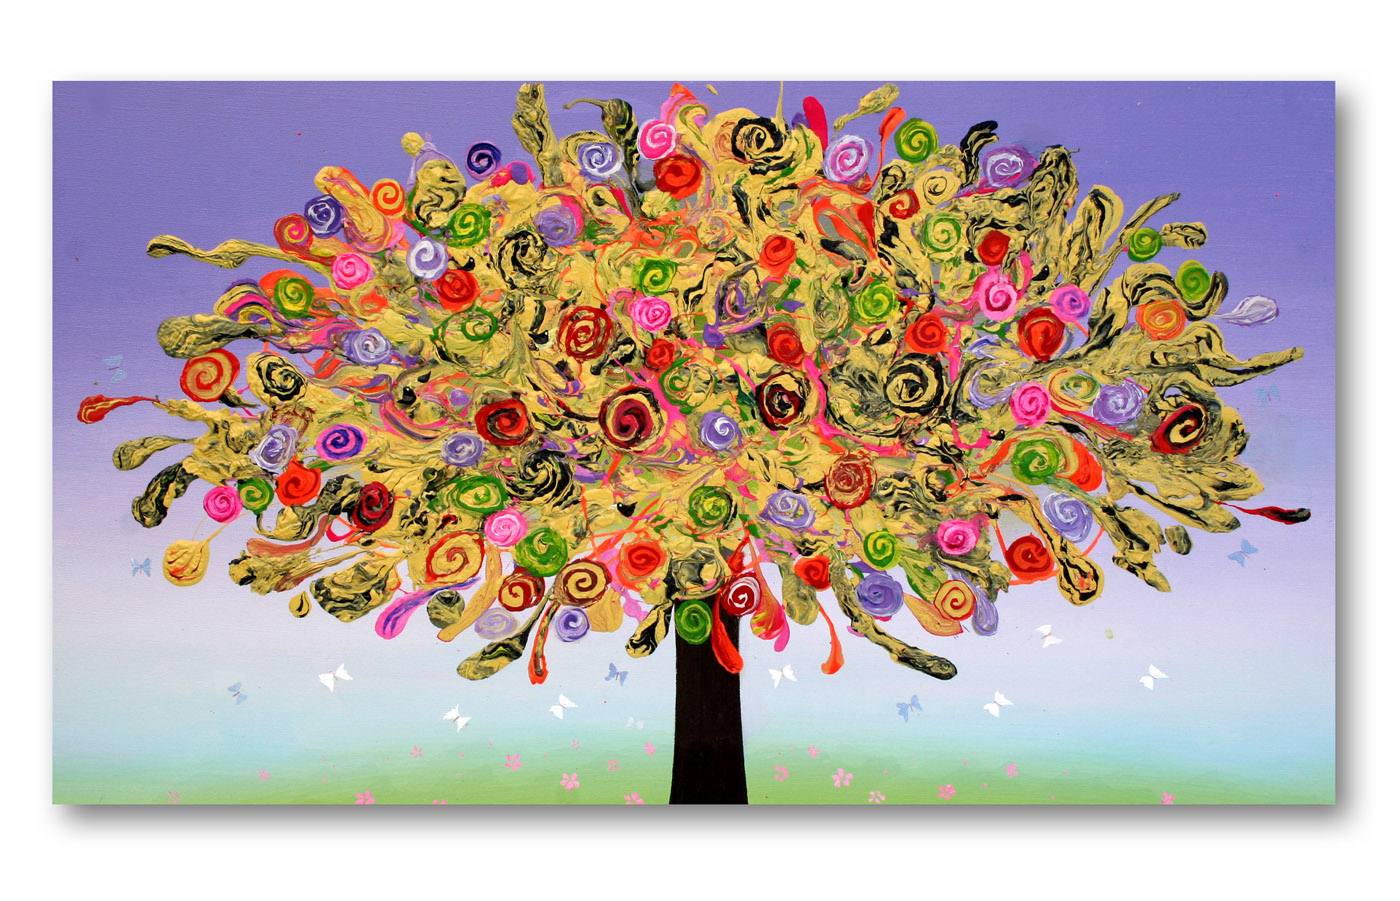 happytree2__Acrylic on stretched canvas__ 20x40inches